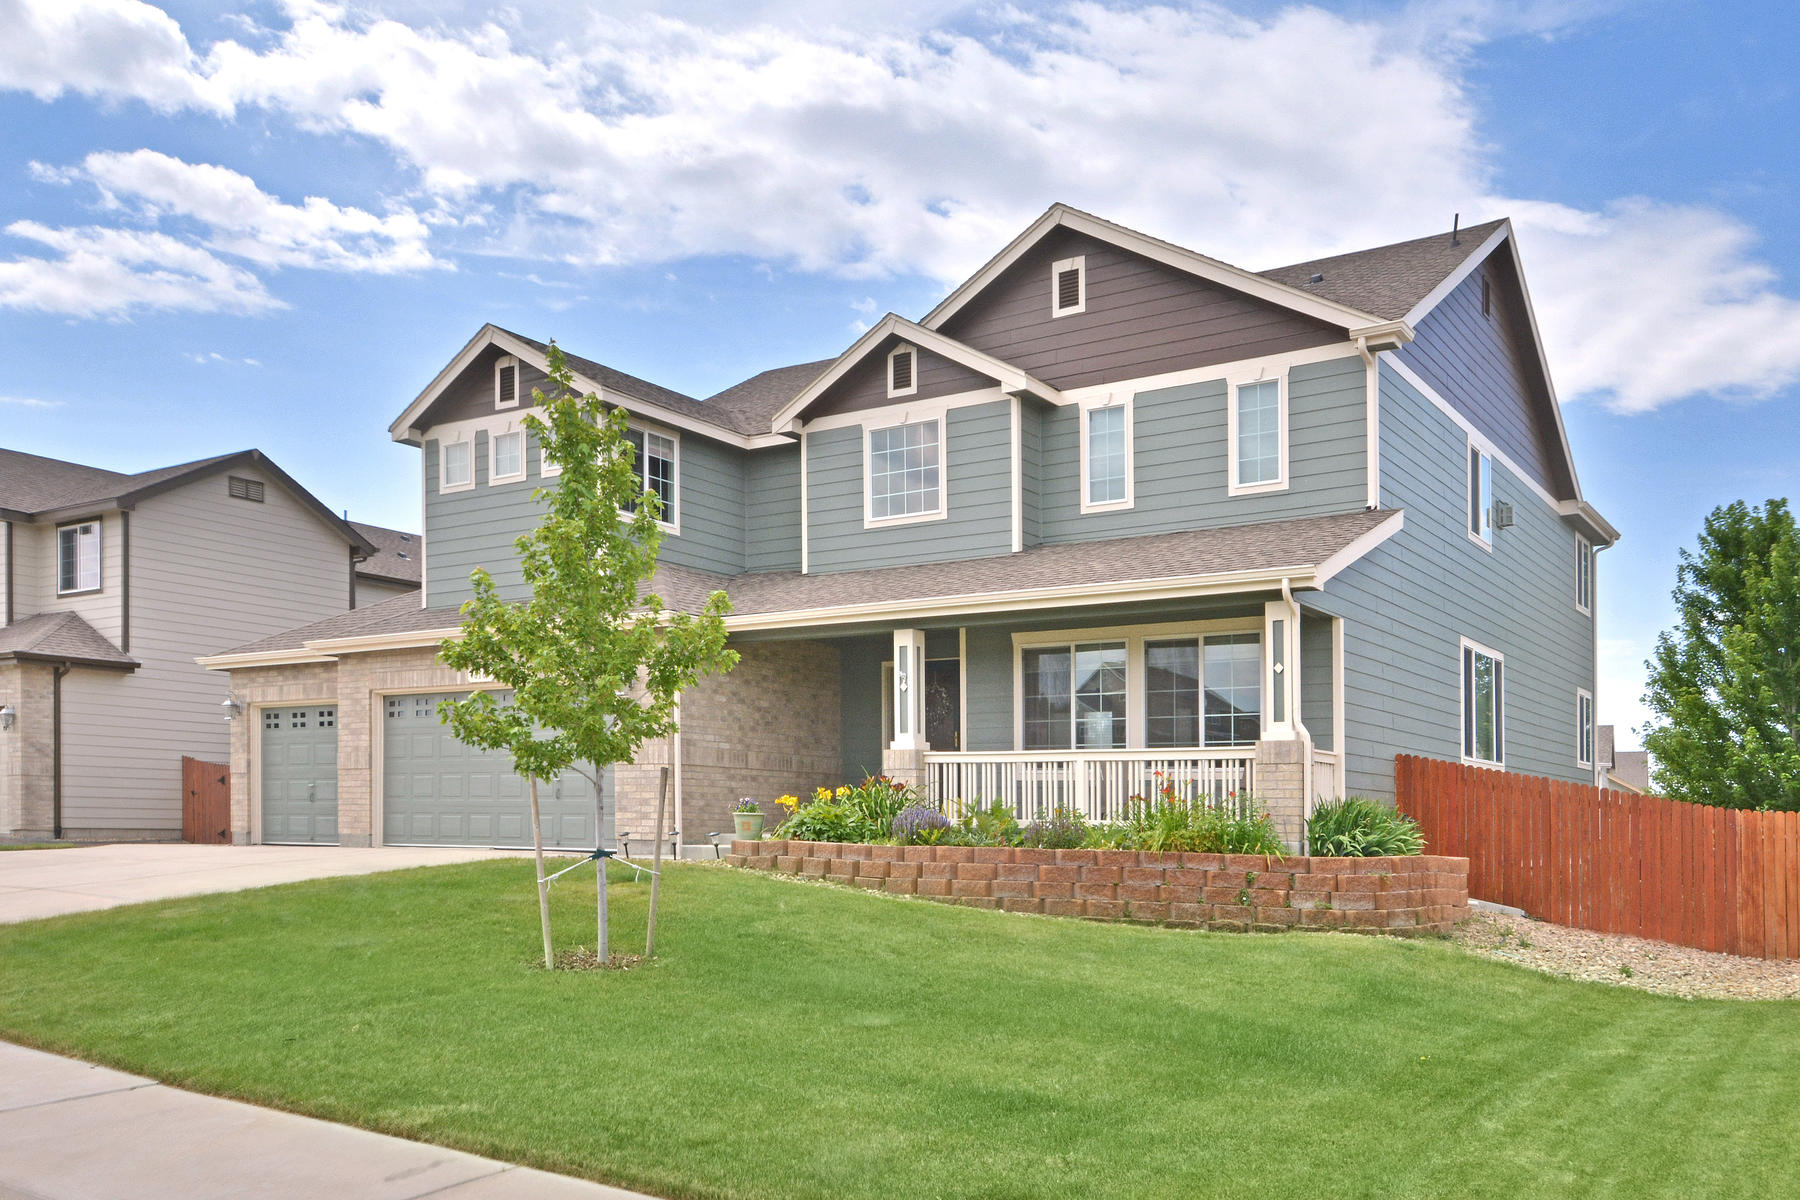 Single Family Home for Active at MUST See Fabulous Home With Beautiful Views! 810 Reliance Drive Erie, Colorado 80516 United States